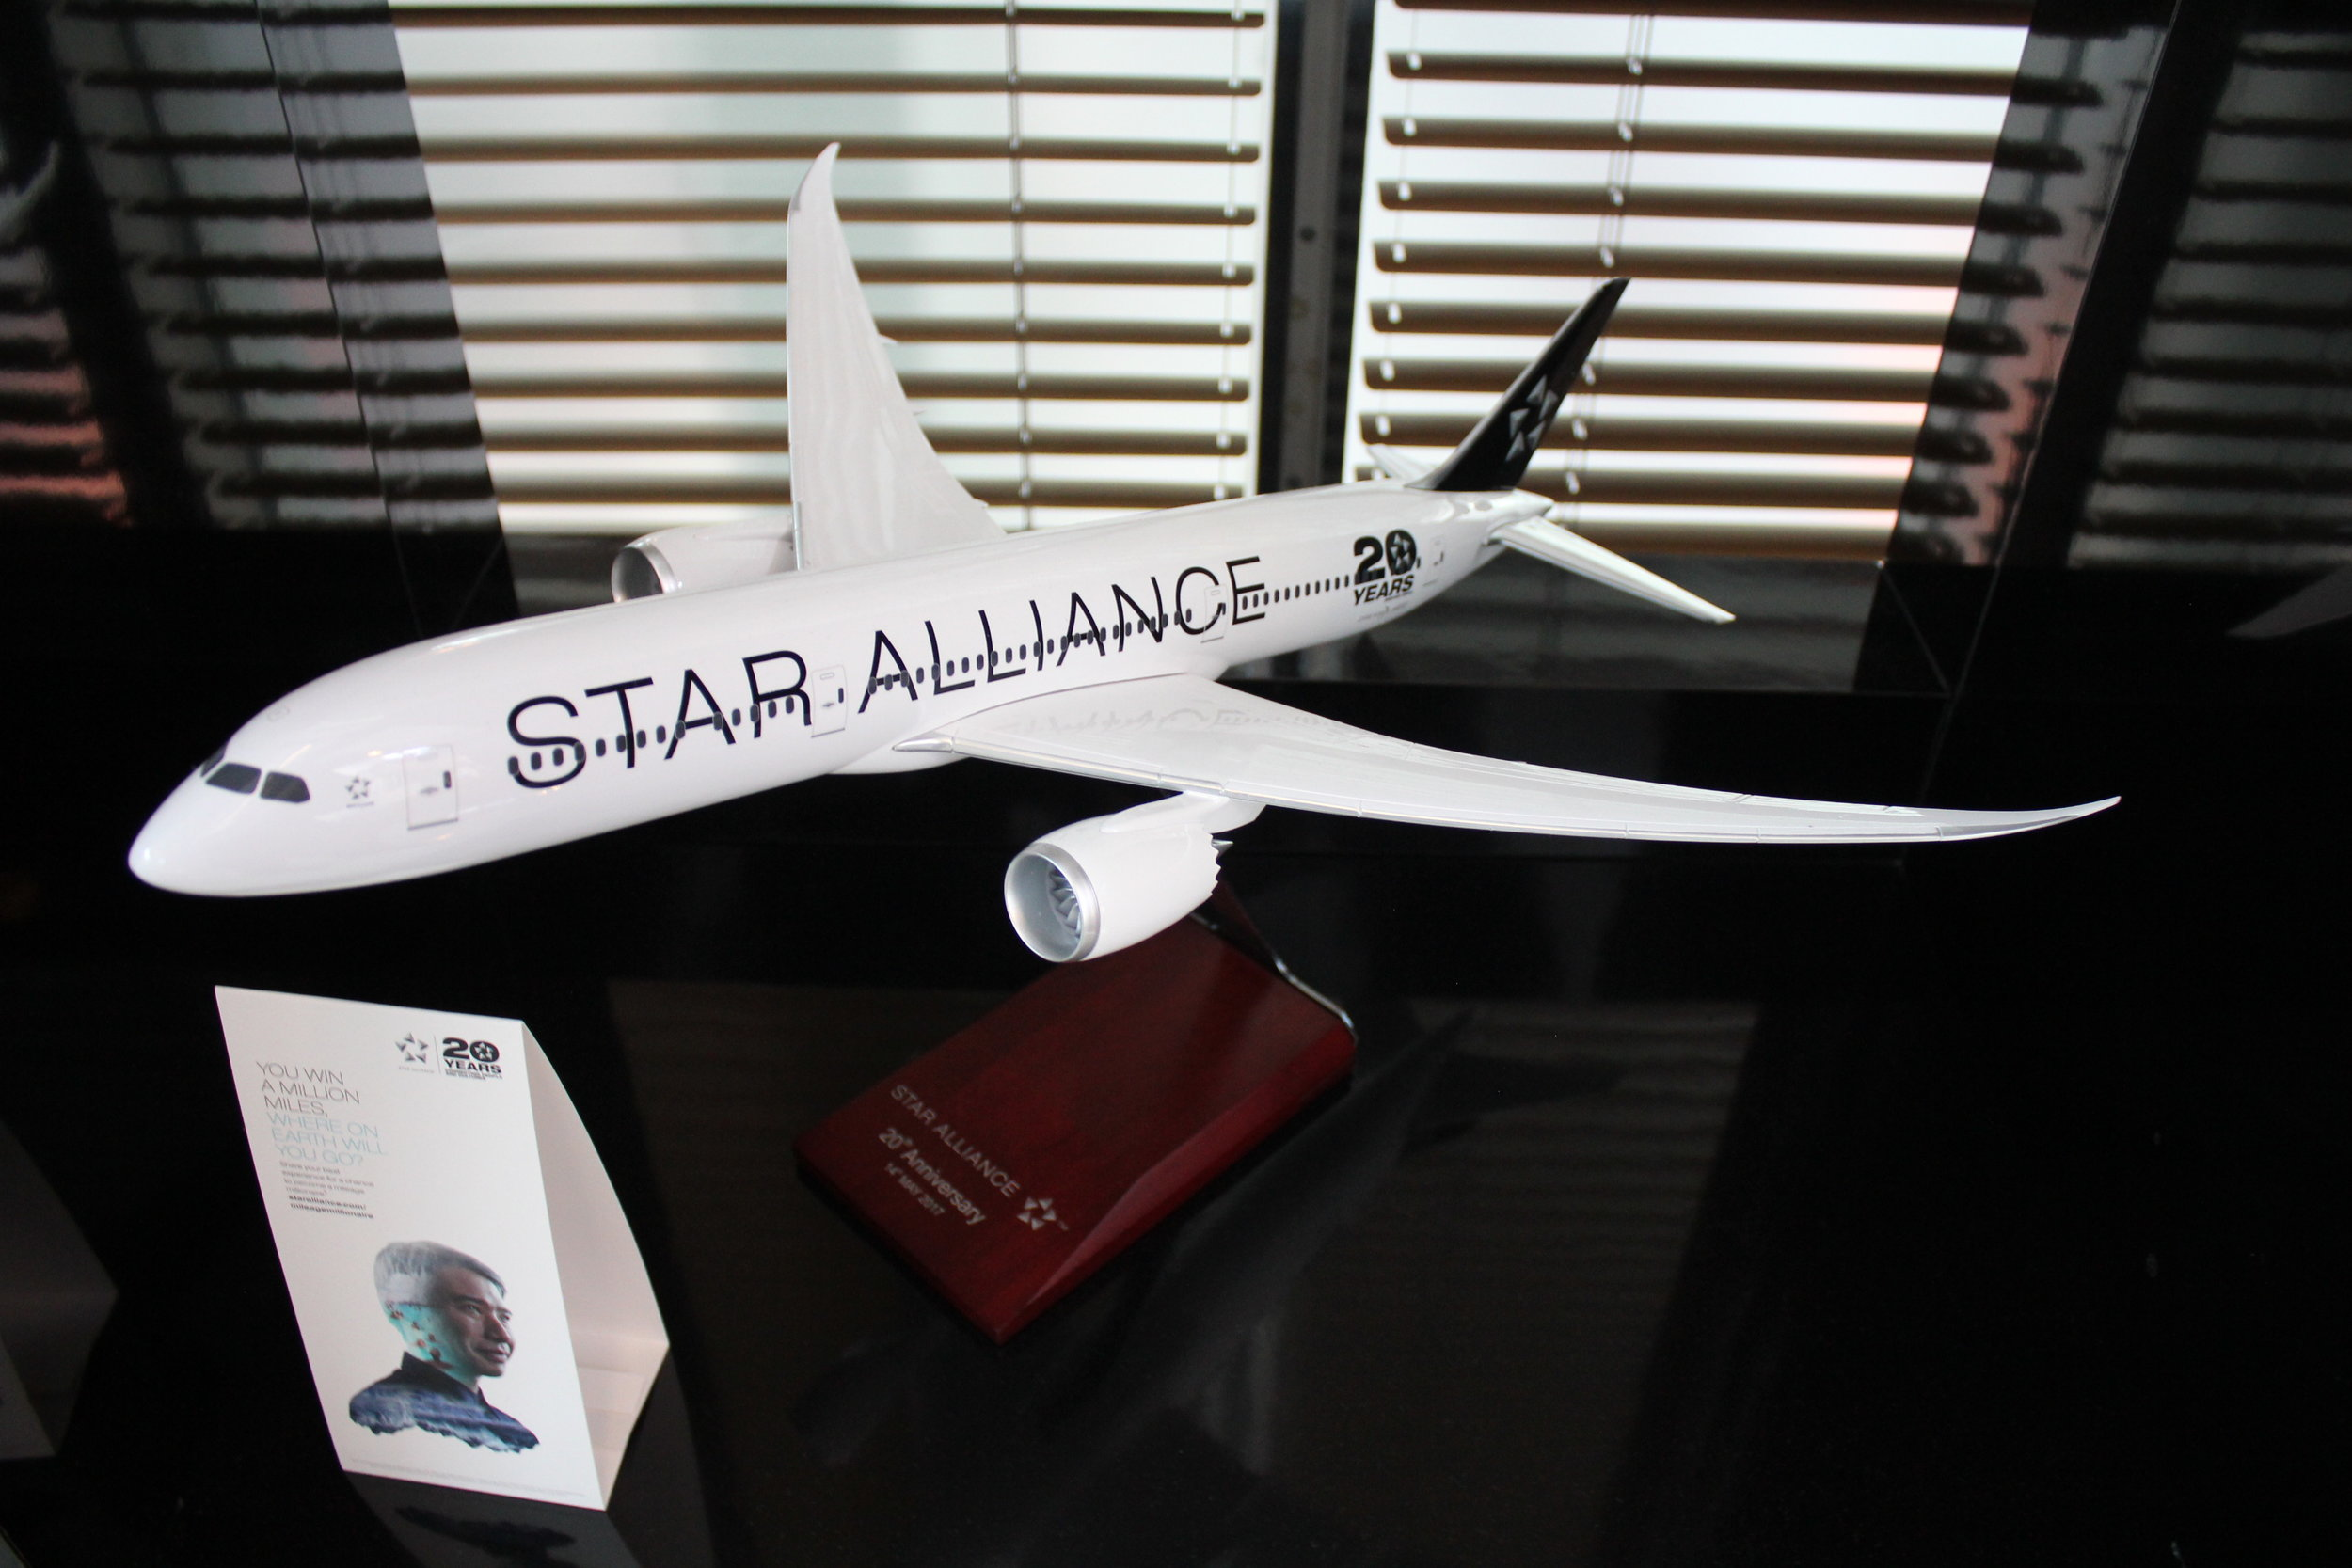 LOT Business Lounge Warsaw – Star Alliance 787 model airplane